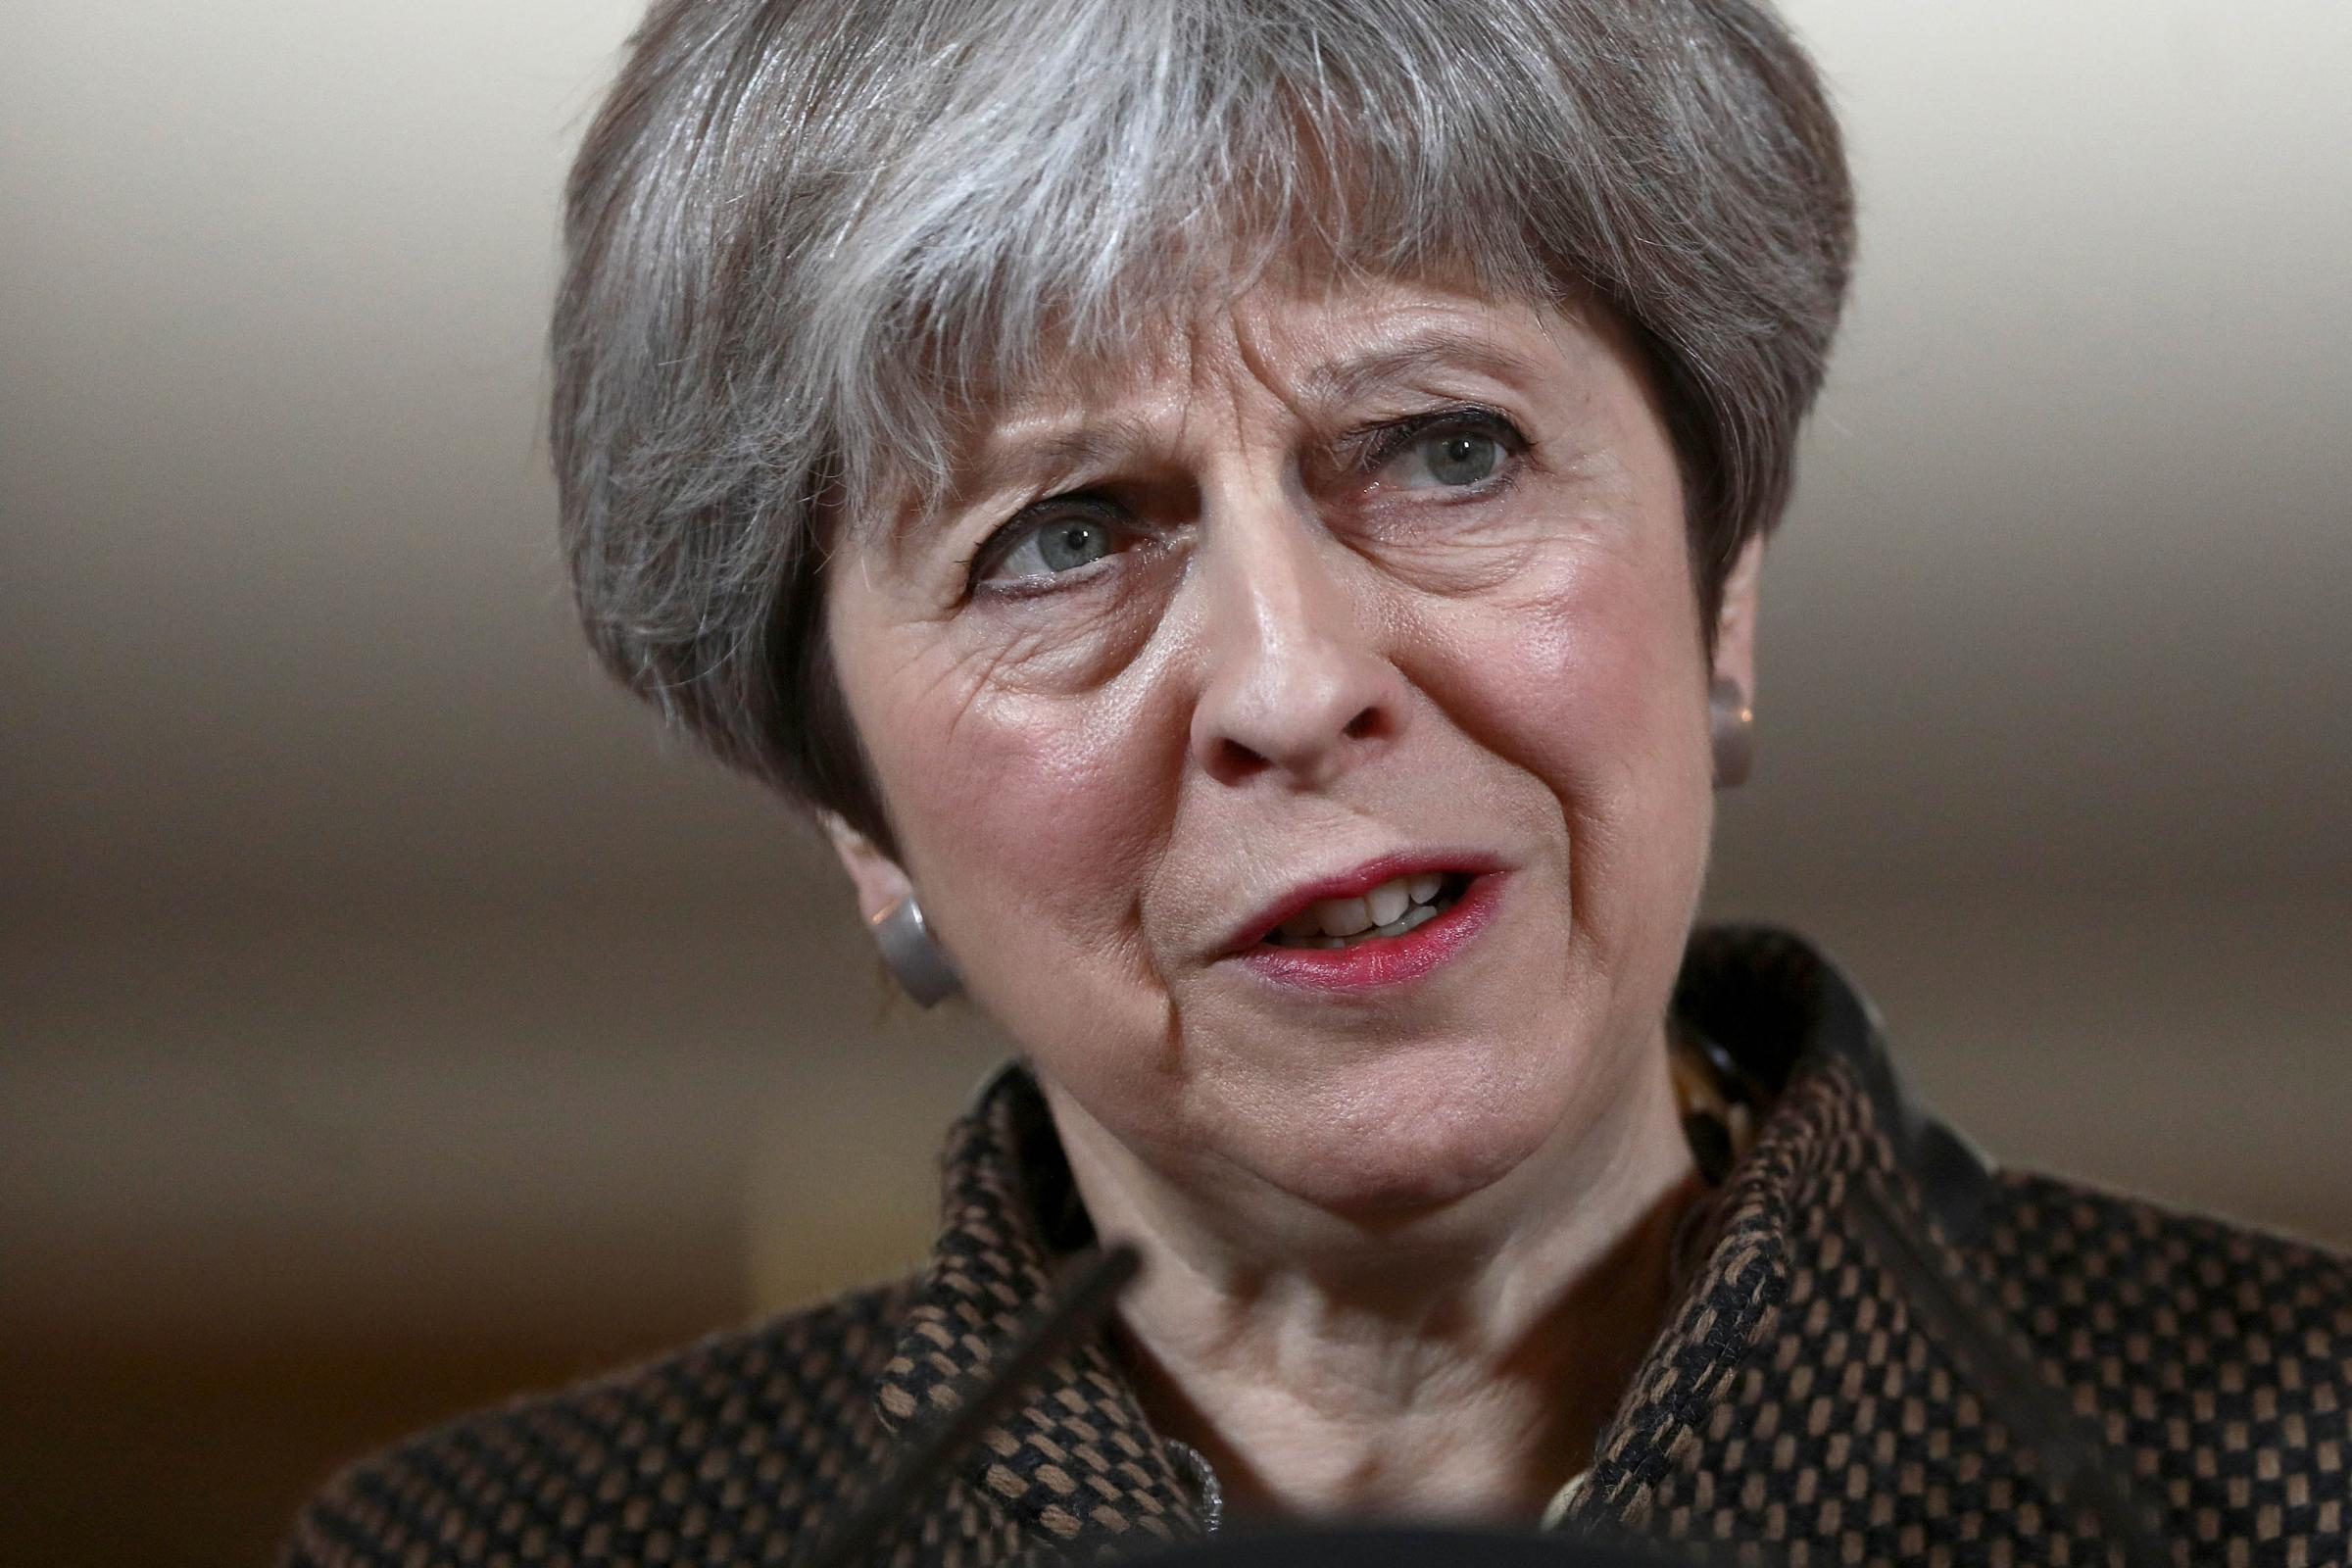 TOUGH TIME: For Prime Minister Theresa May